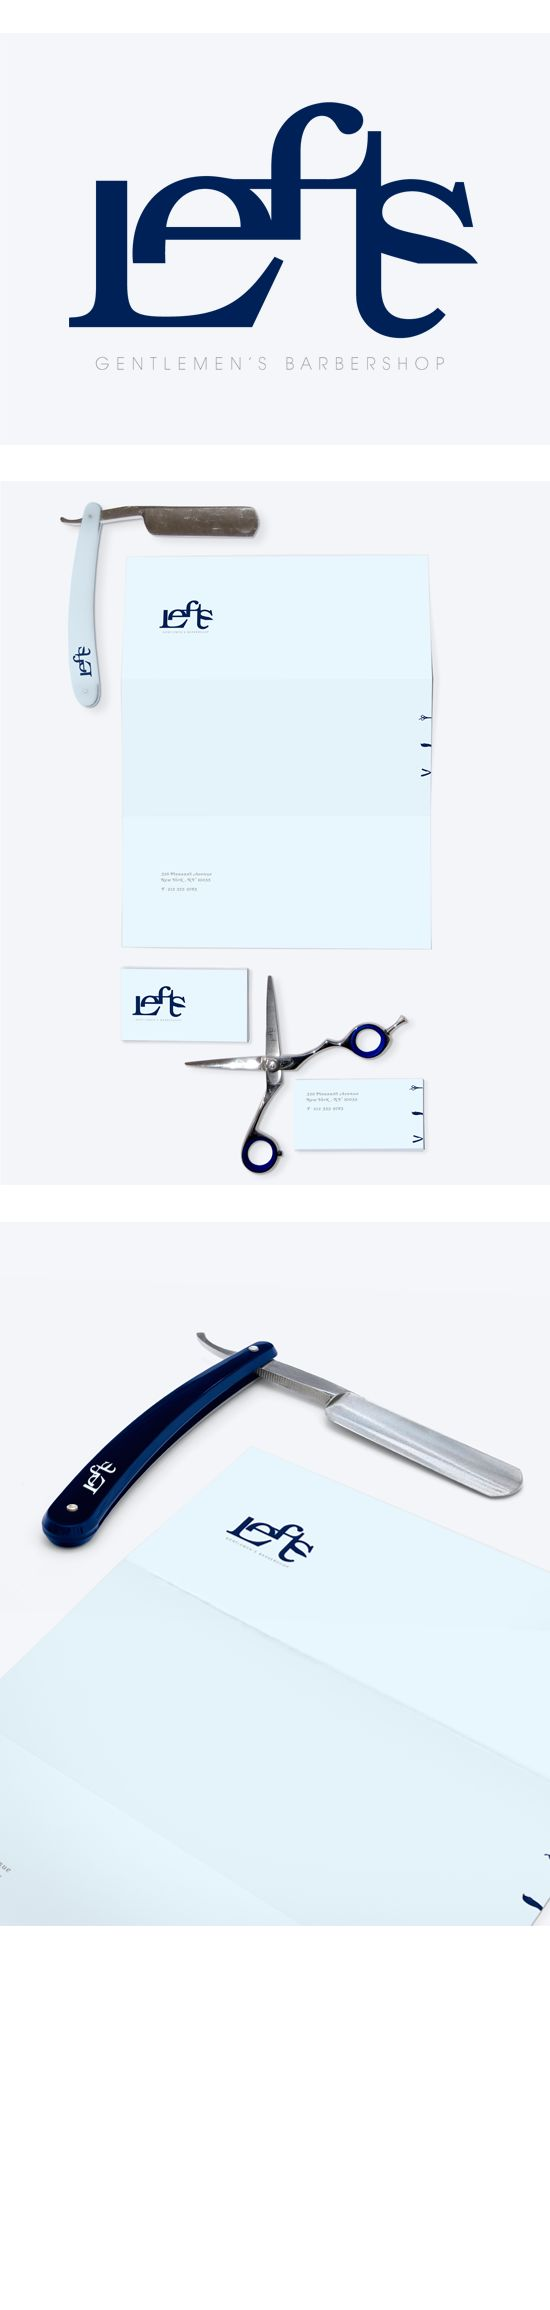 identity / lets| #stationary #corporate #design #corporatedesign #logo #identity #branding #marketing <<< repinned by an #advertising agency from #Hamburg / #Germany - www.BlickeDeeler.de